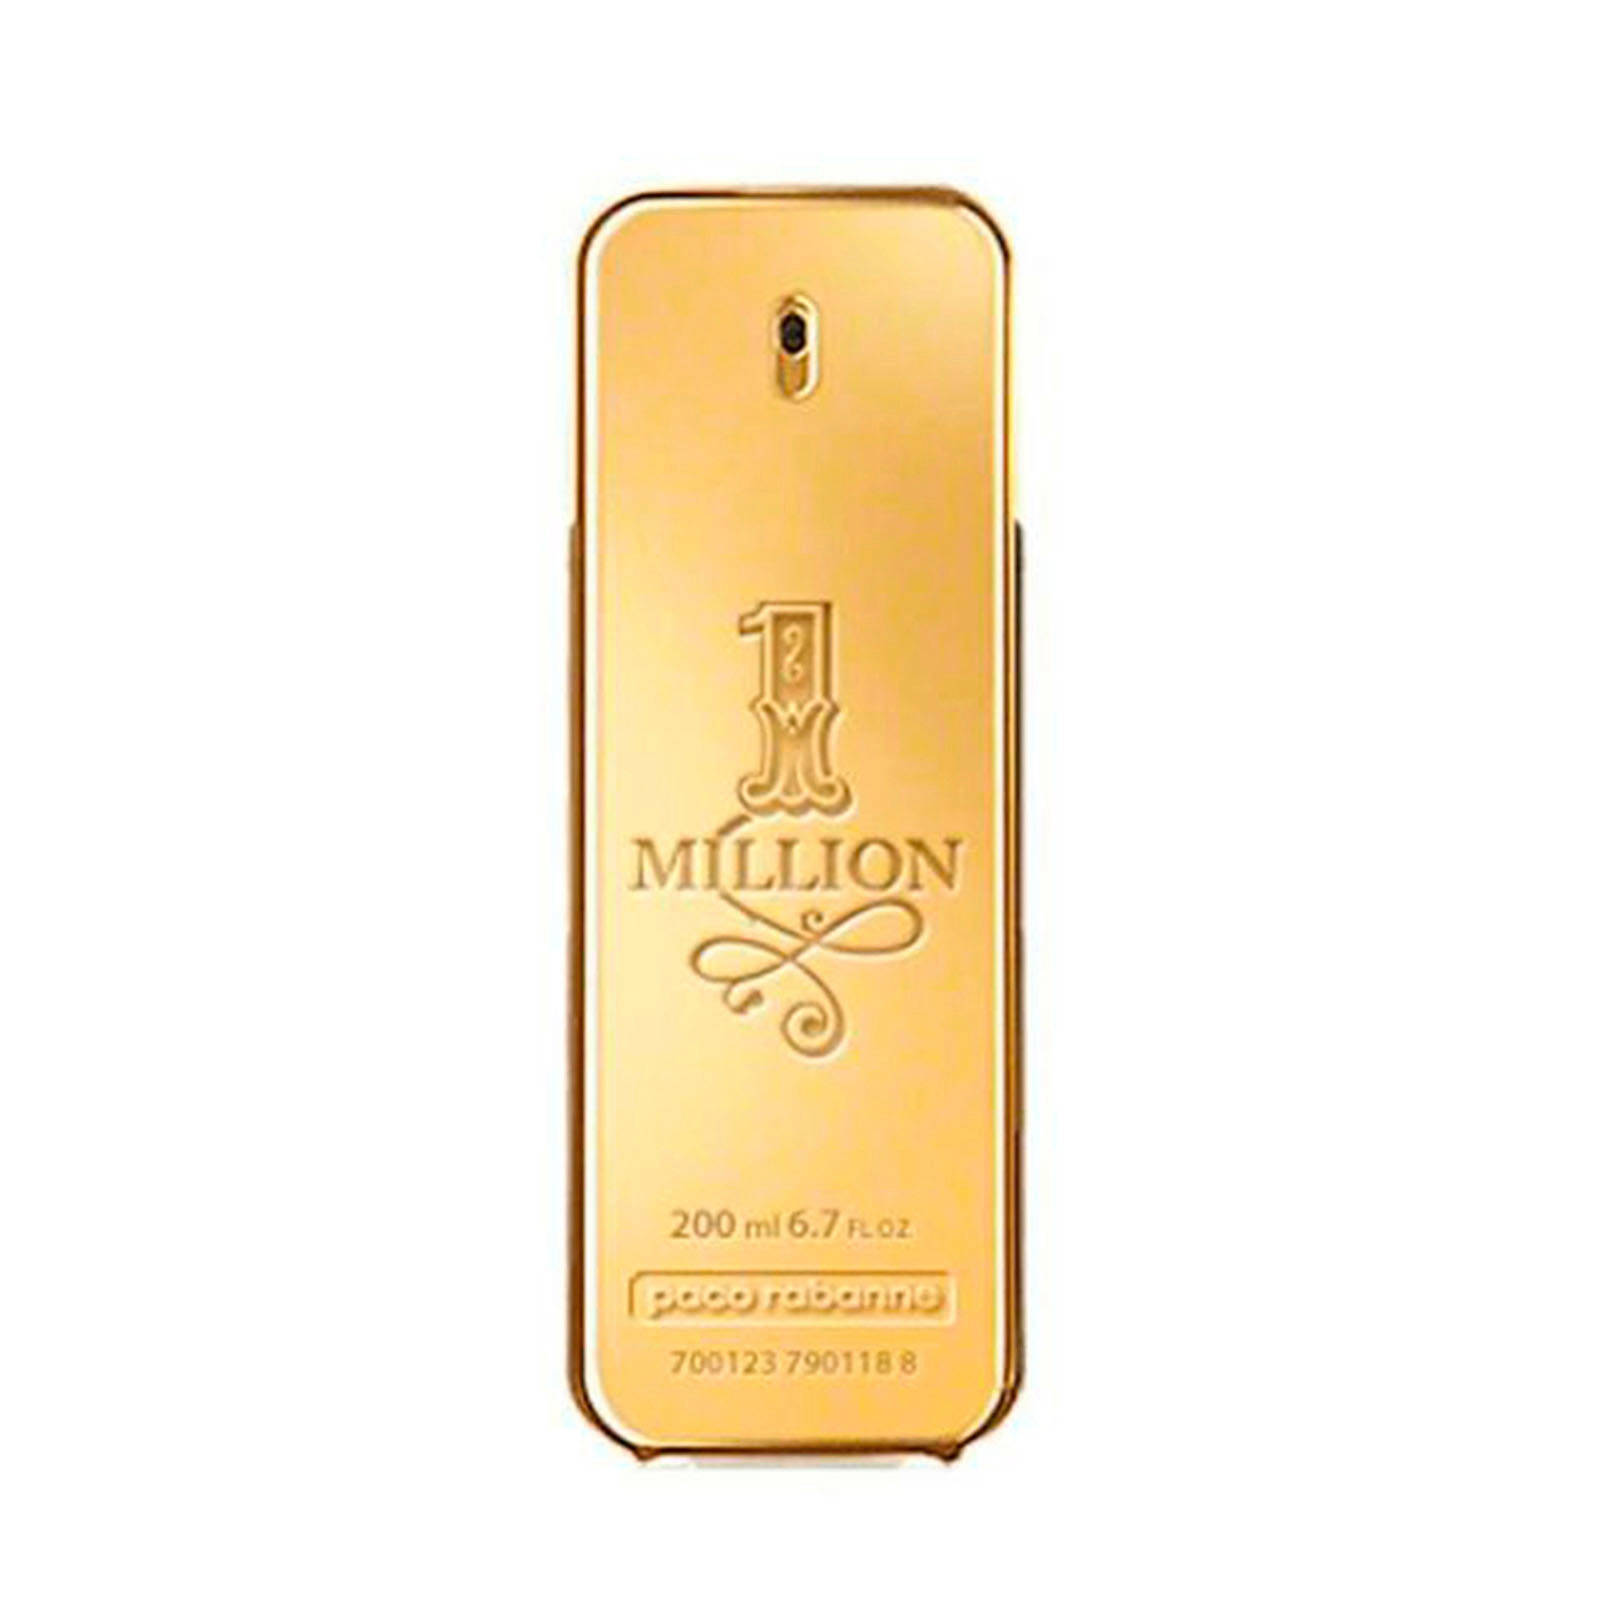 1 Million eau de toilette 200 ml